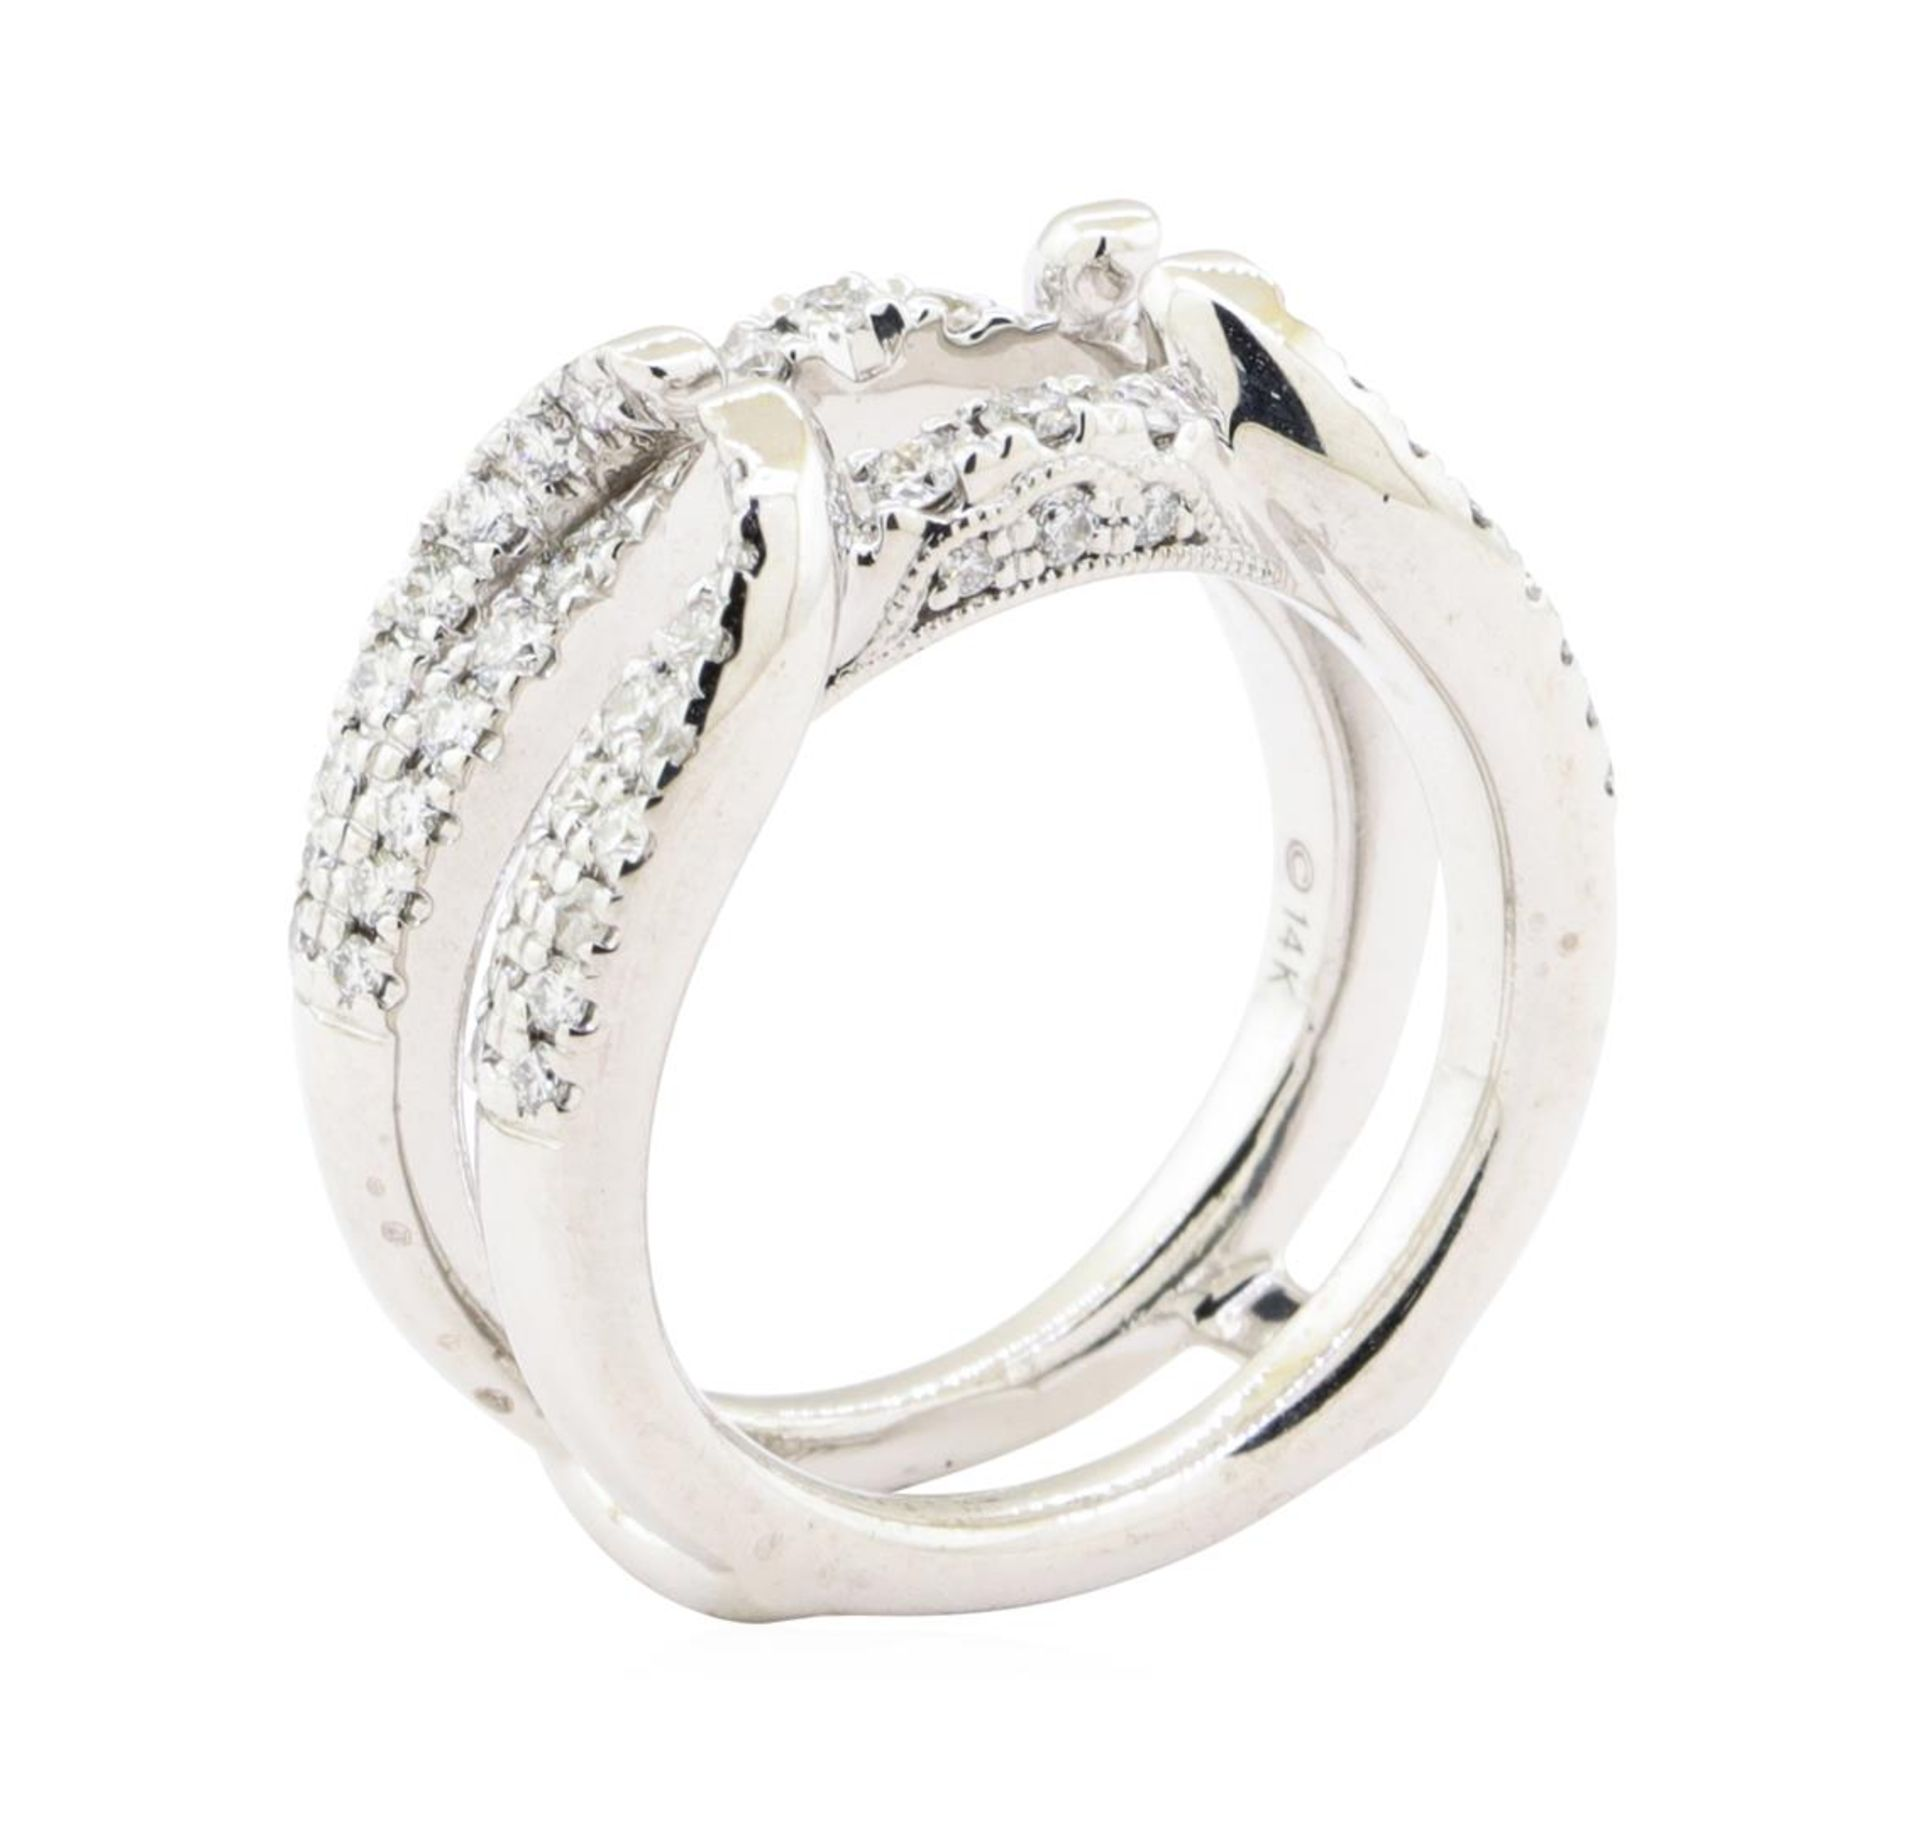 0.70 ctw Diamond Ring Guard - 14KT White Gold - Image 4 of 4